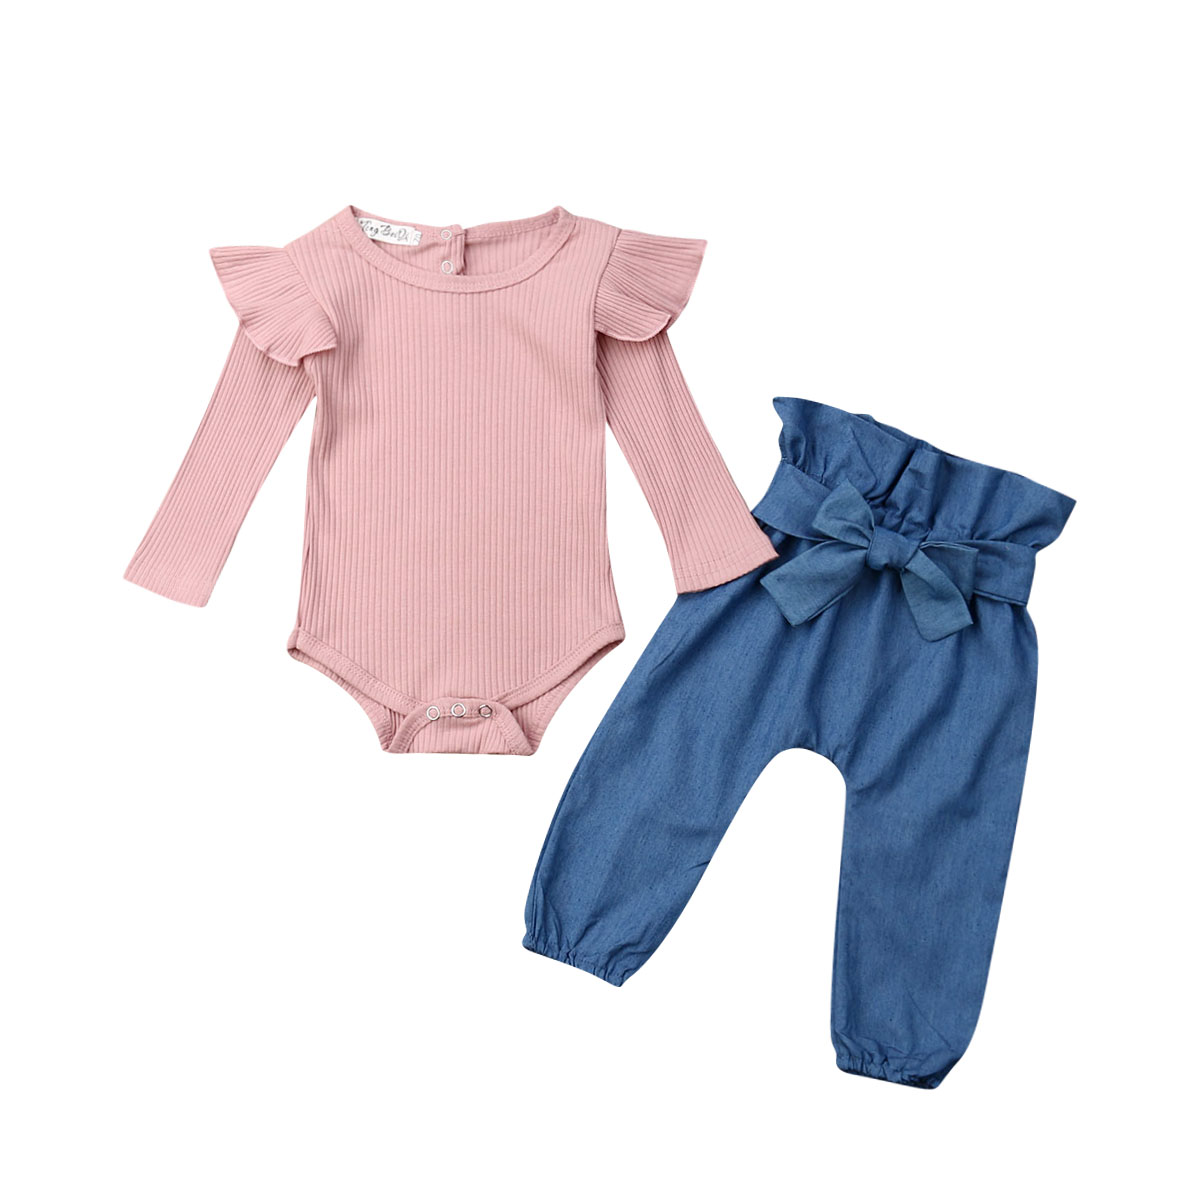 Baby Girl Clothes Autumn Cotton Newborn Infant Baby Girl Jumpsuit Flying Sleeve Bodysuit Bowknot Denim Pants 2Pcs Outfits Sets